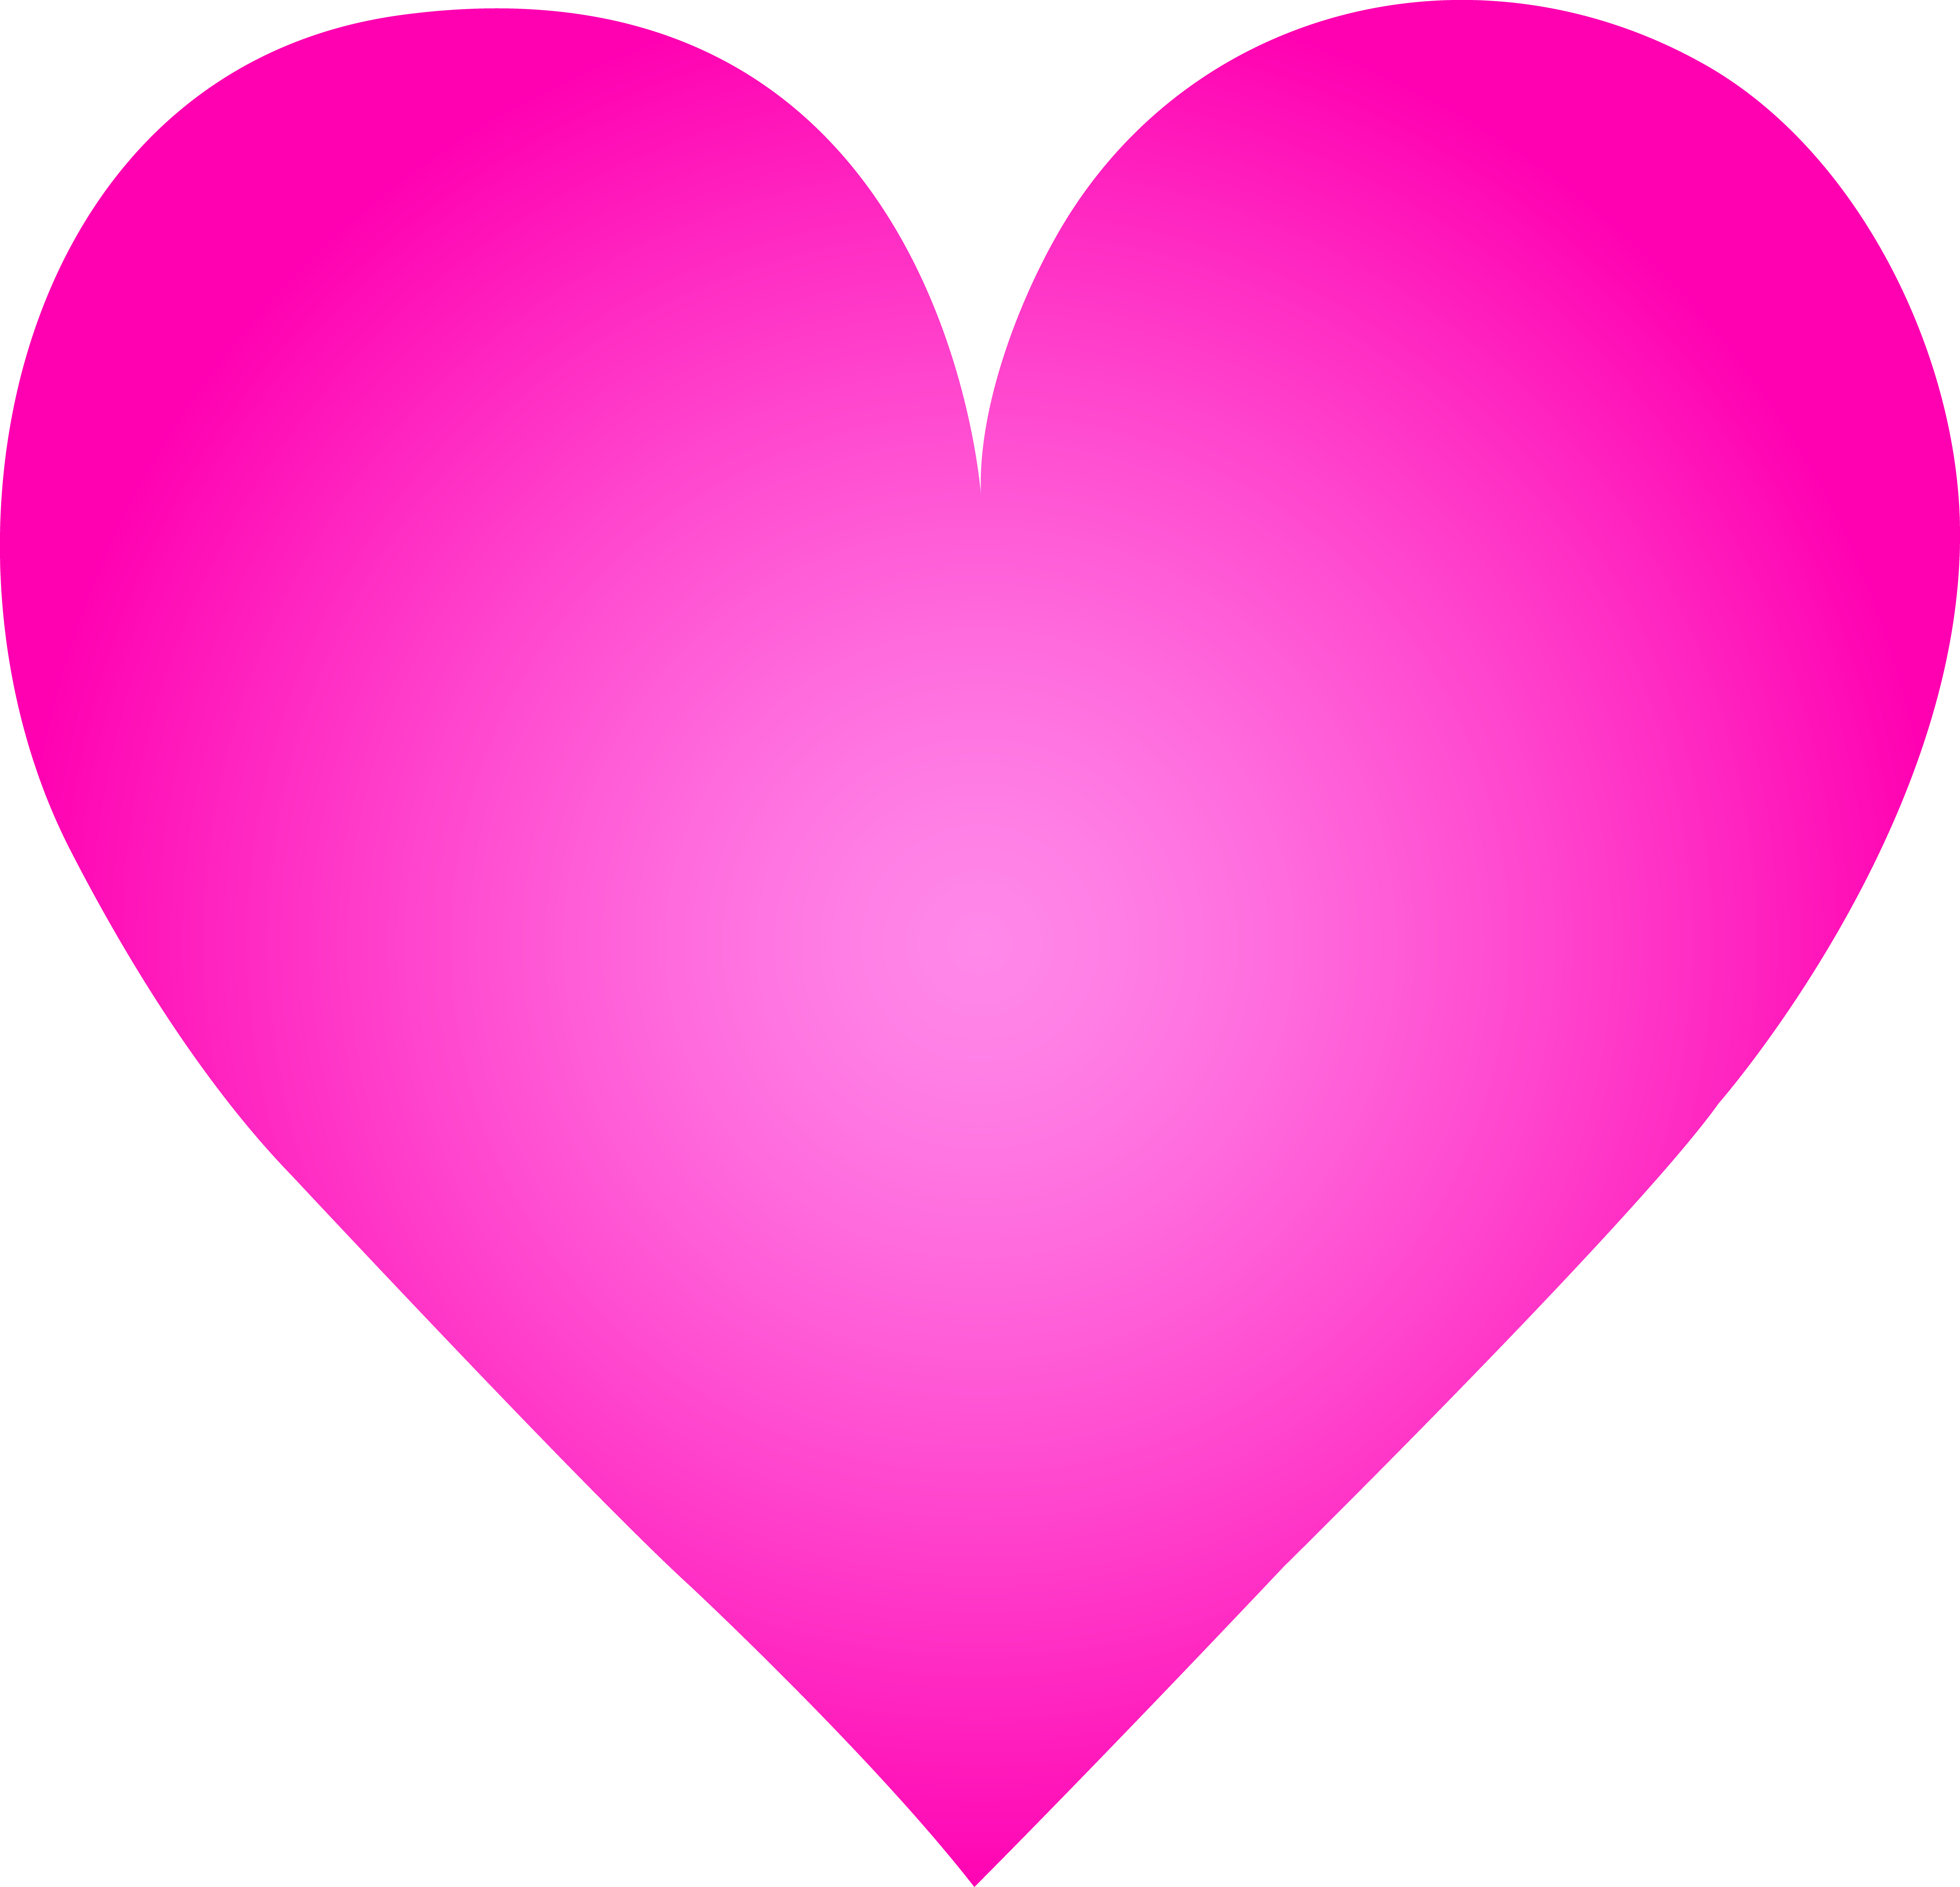 clip library stock Arrow and heart clipart. Free pink image download